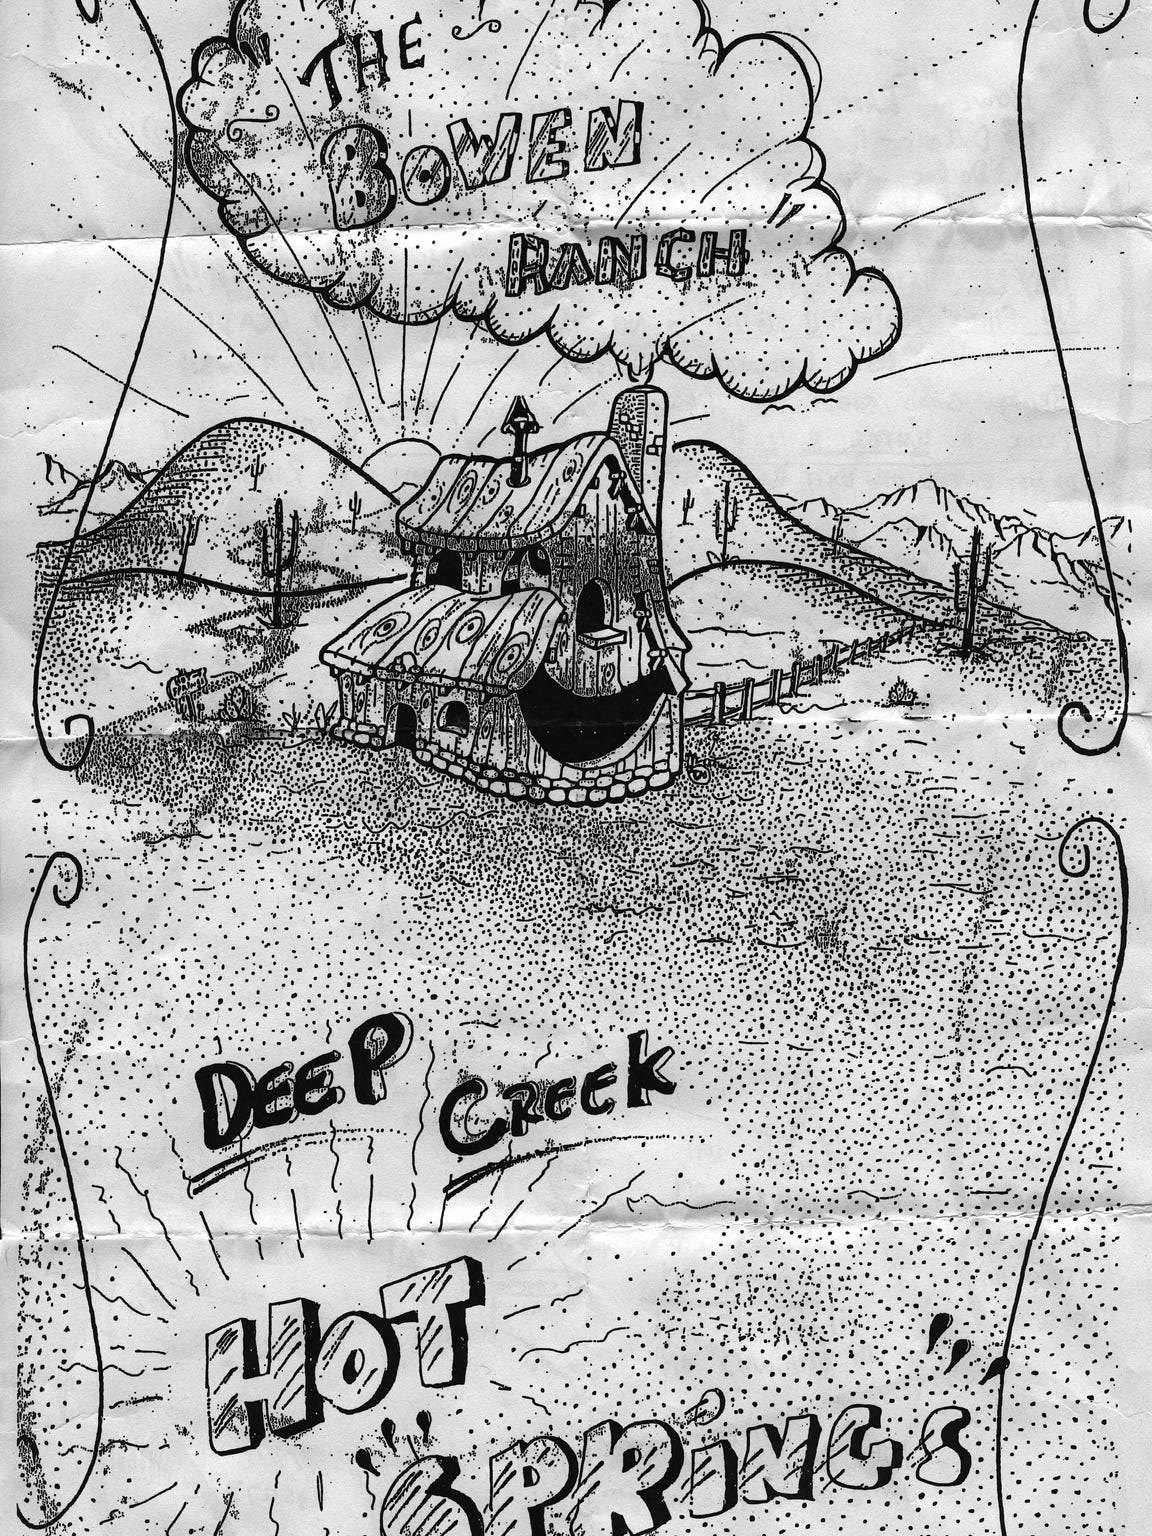 A flyer for Deep Creek Hot Springs.